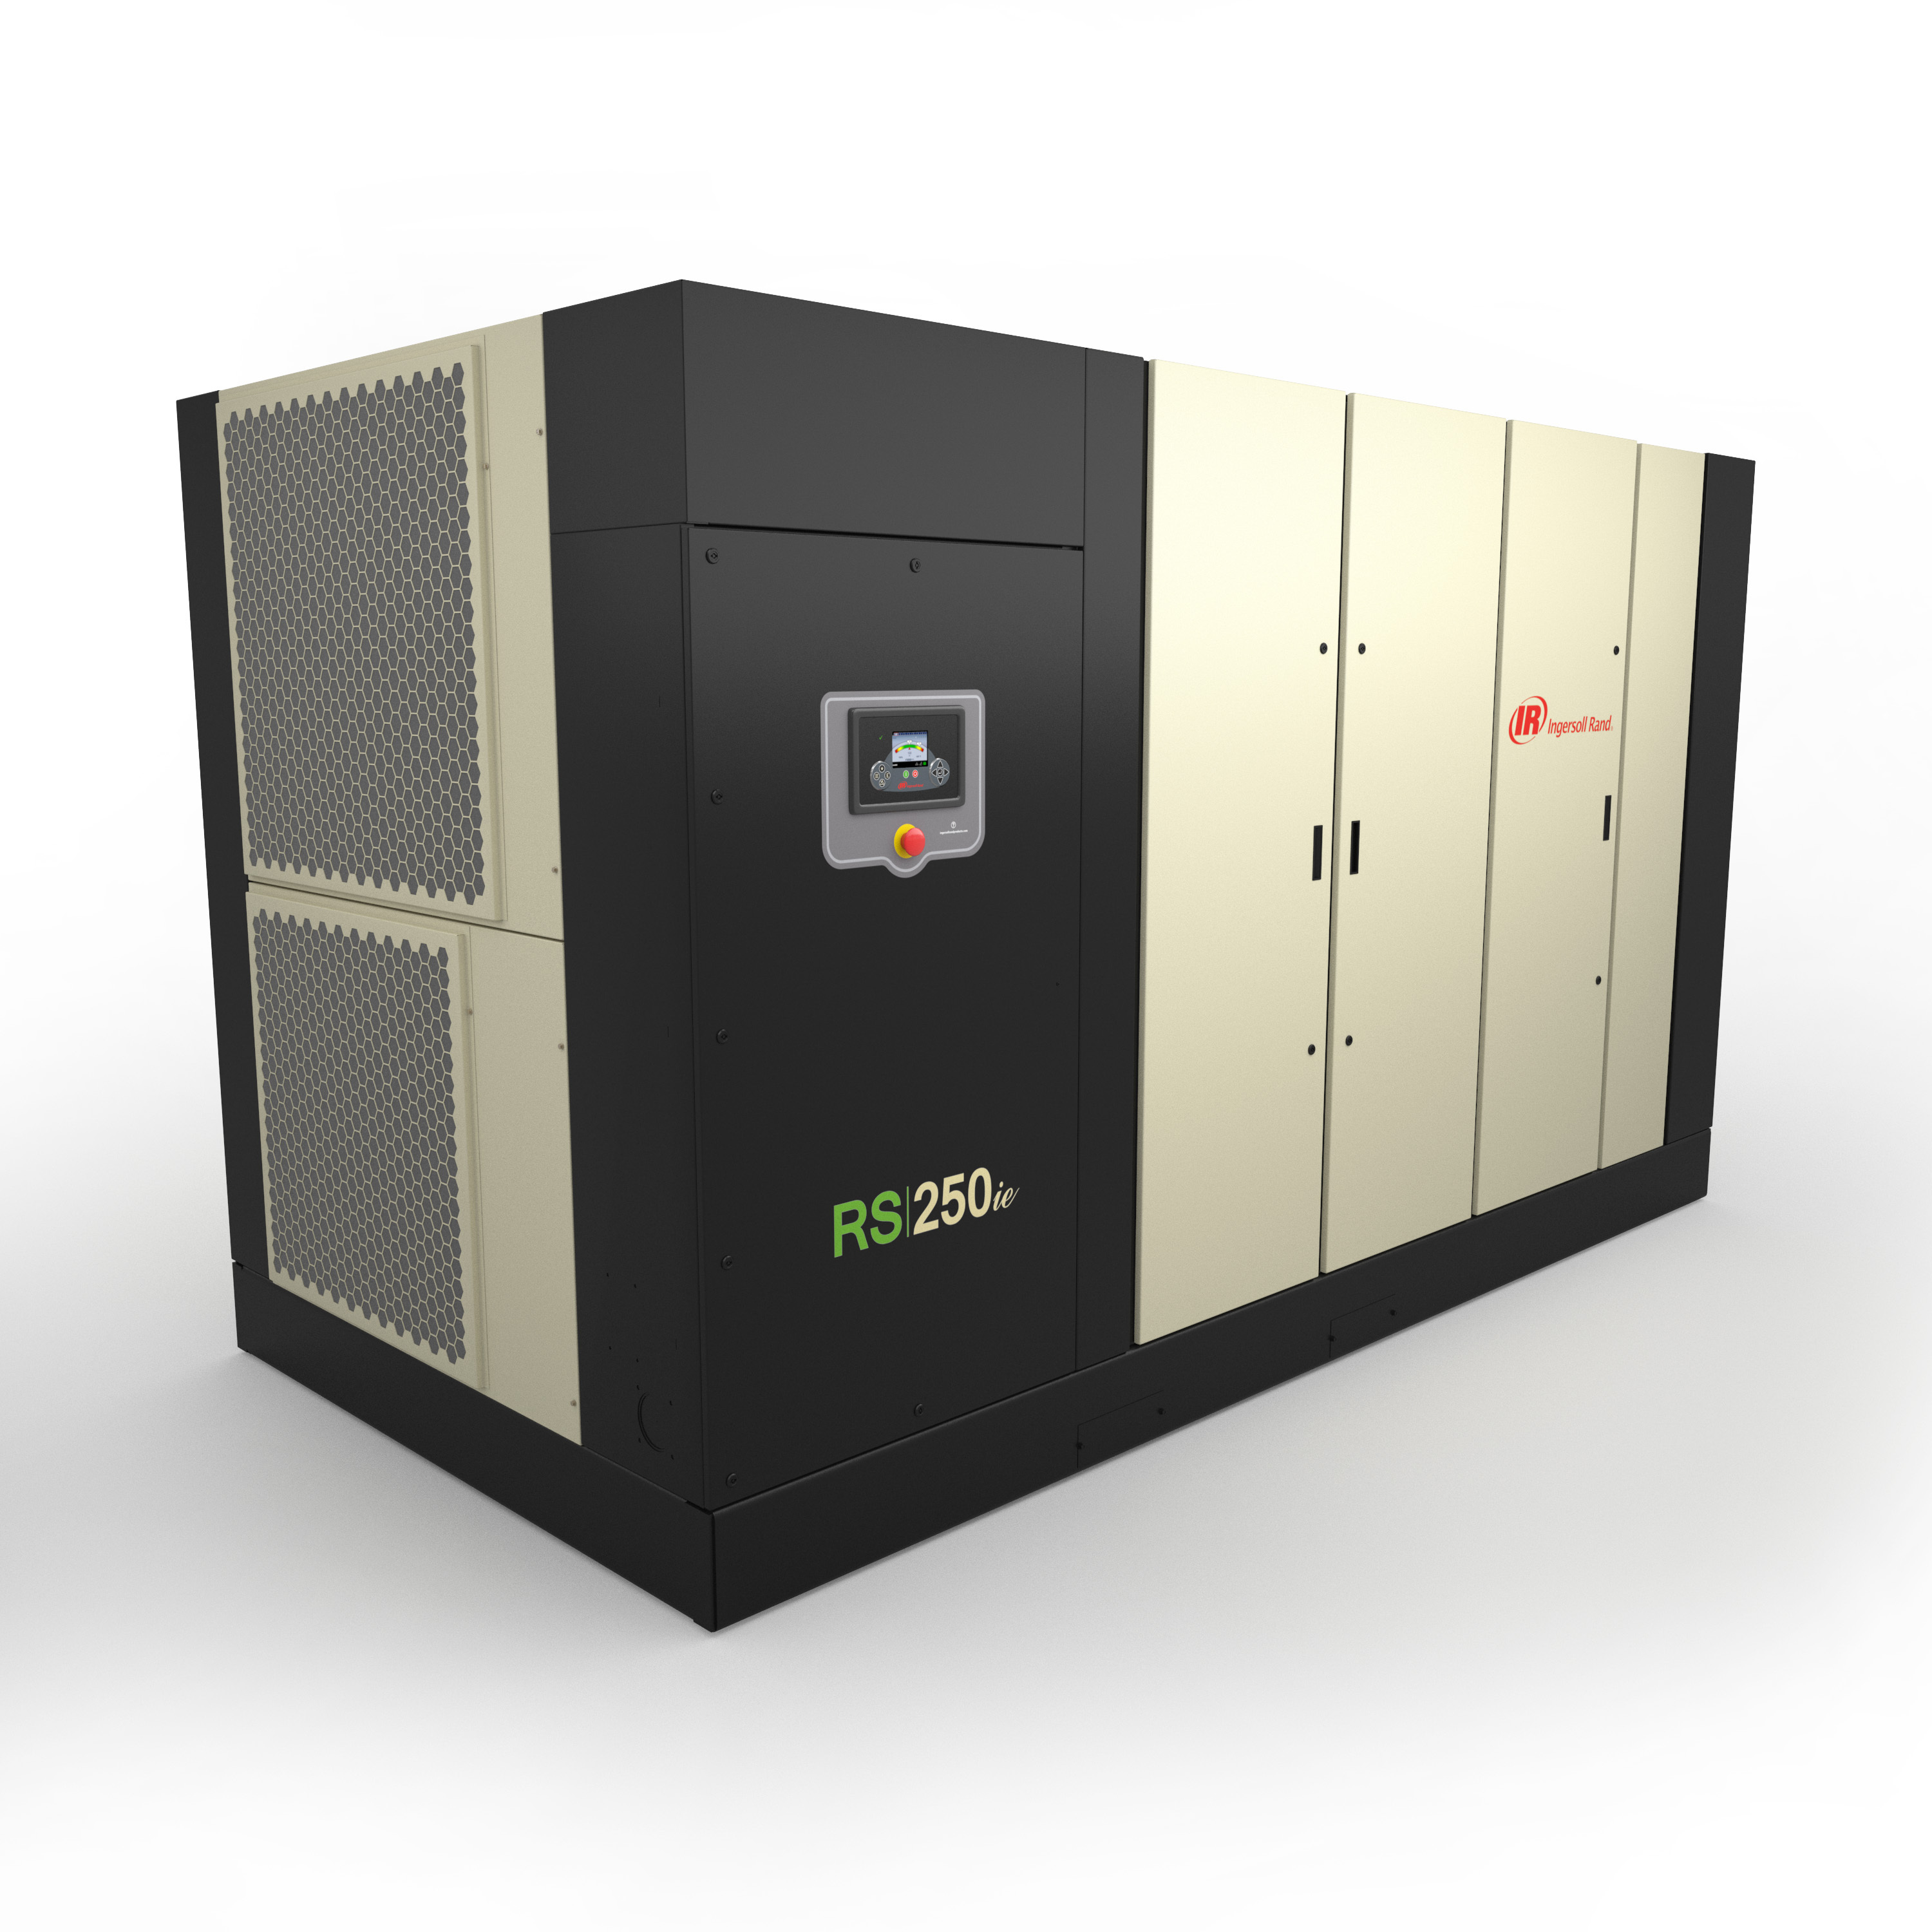 The Next Generation R-Series 200-250kW rotary screw air compressors from Ingersoll Rand provide a more energy-efficient solution for customers with high capacity air requirements. The fixed-speed models are 10 percent more efficient compared to legacy products, while the variable speed option is up to 35 percent more efficient compared to the industry average. (Photo: Business Wire)